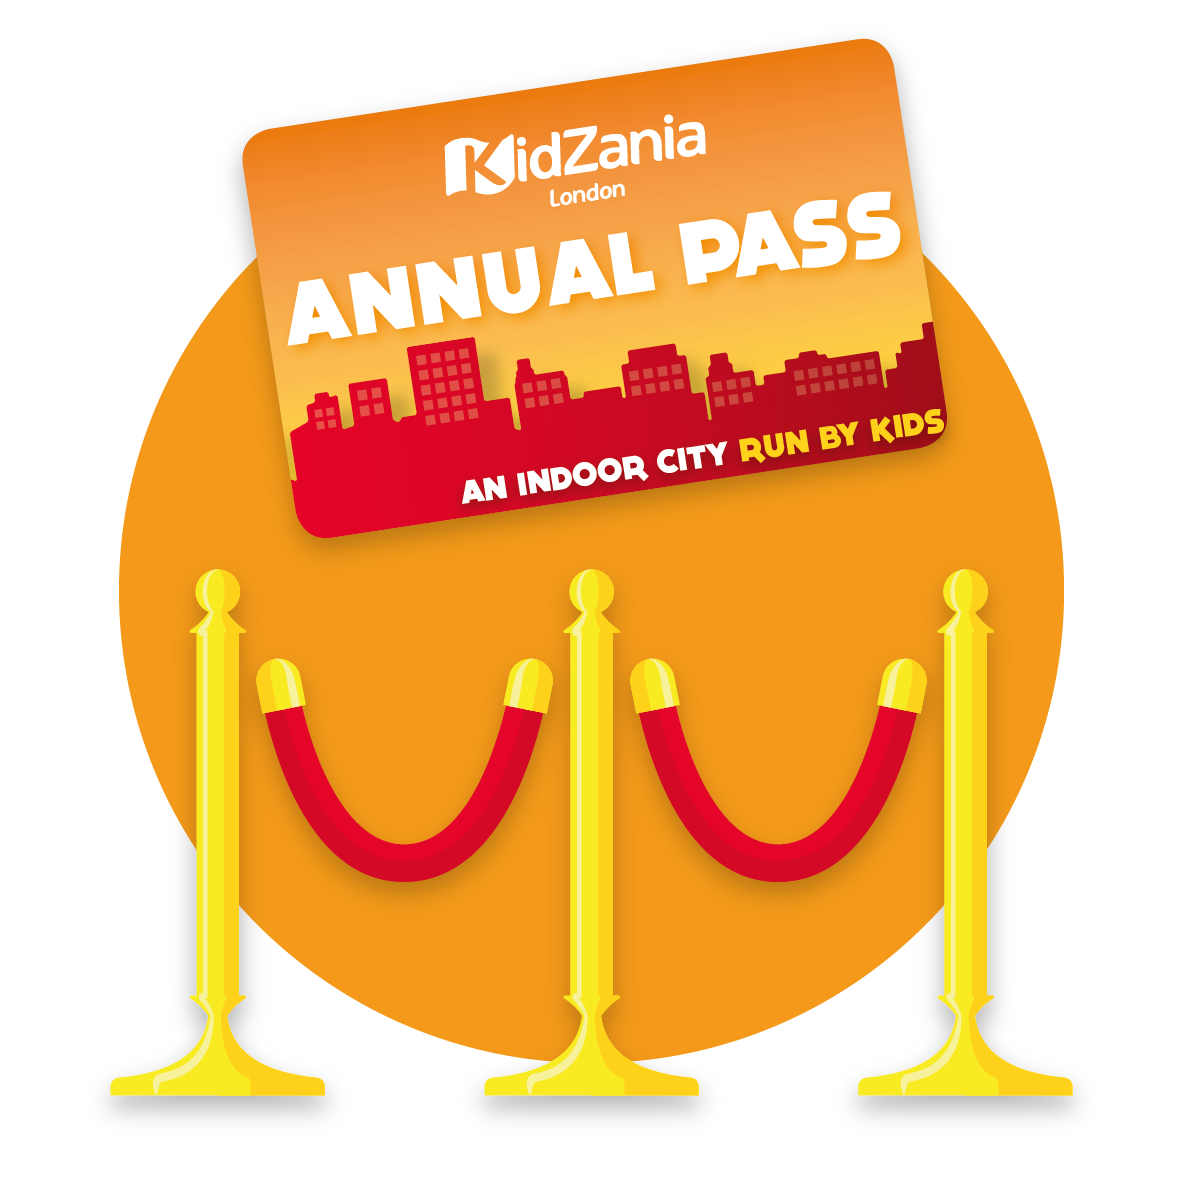 How to Renew your Annual Pass